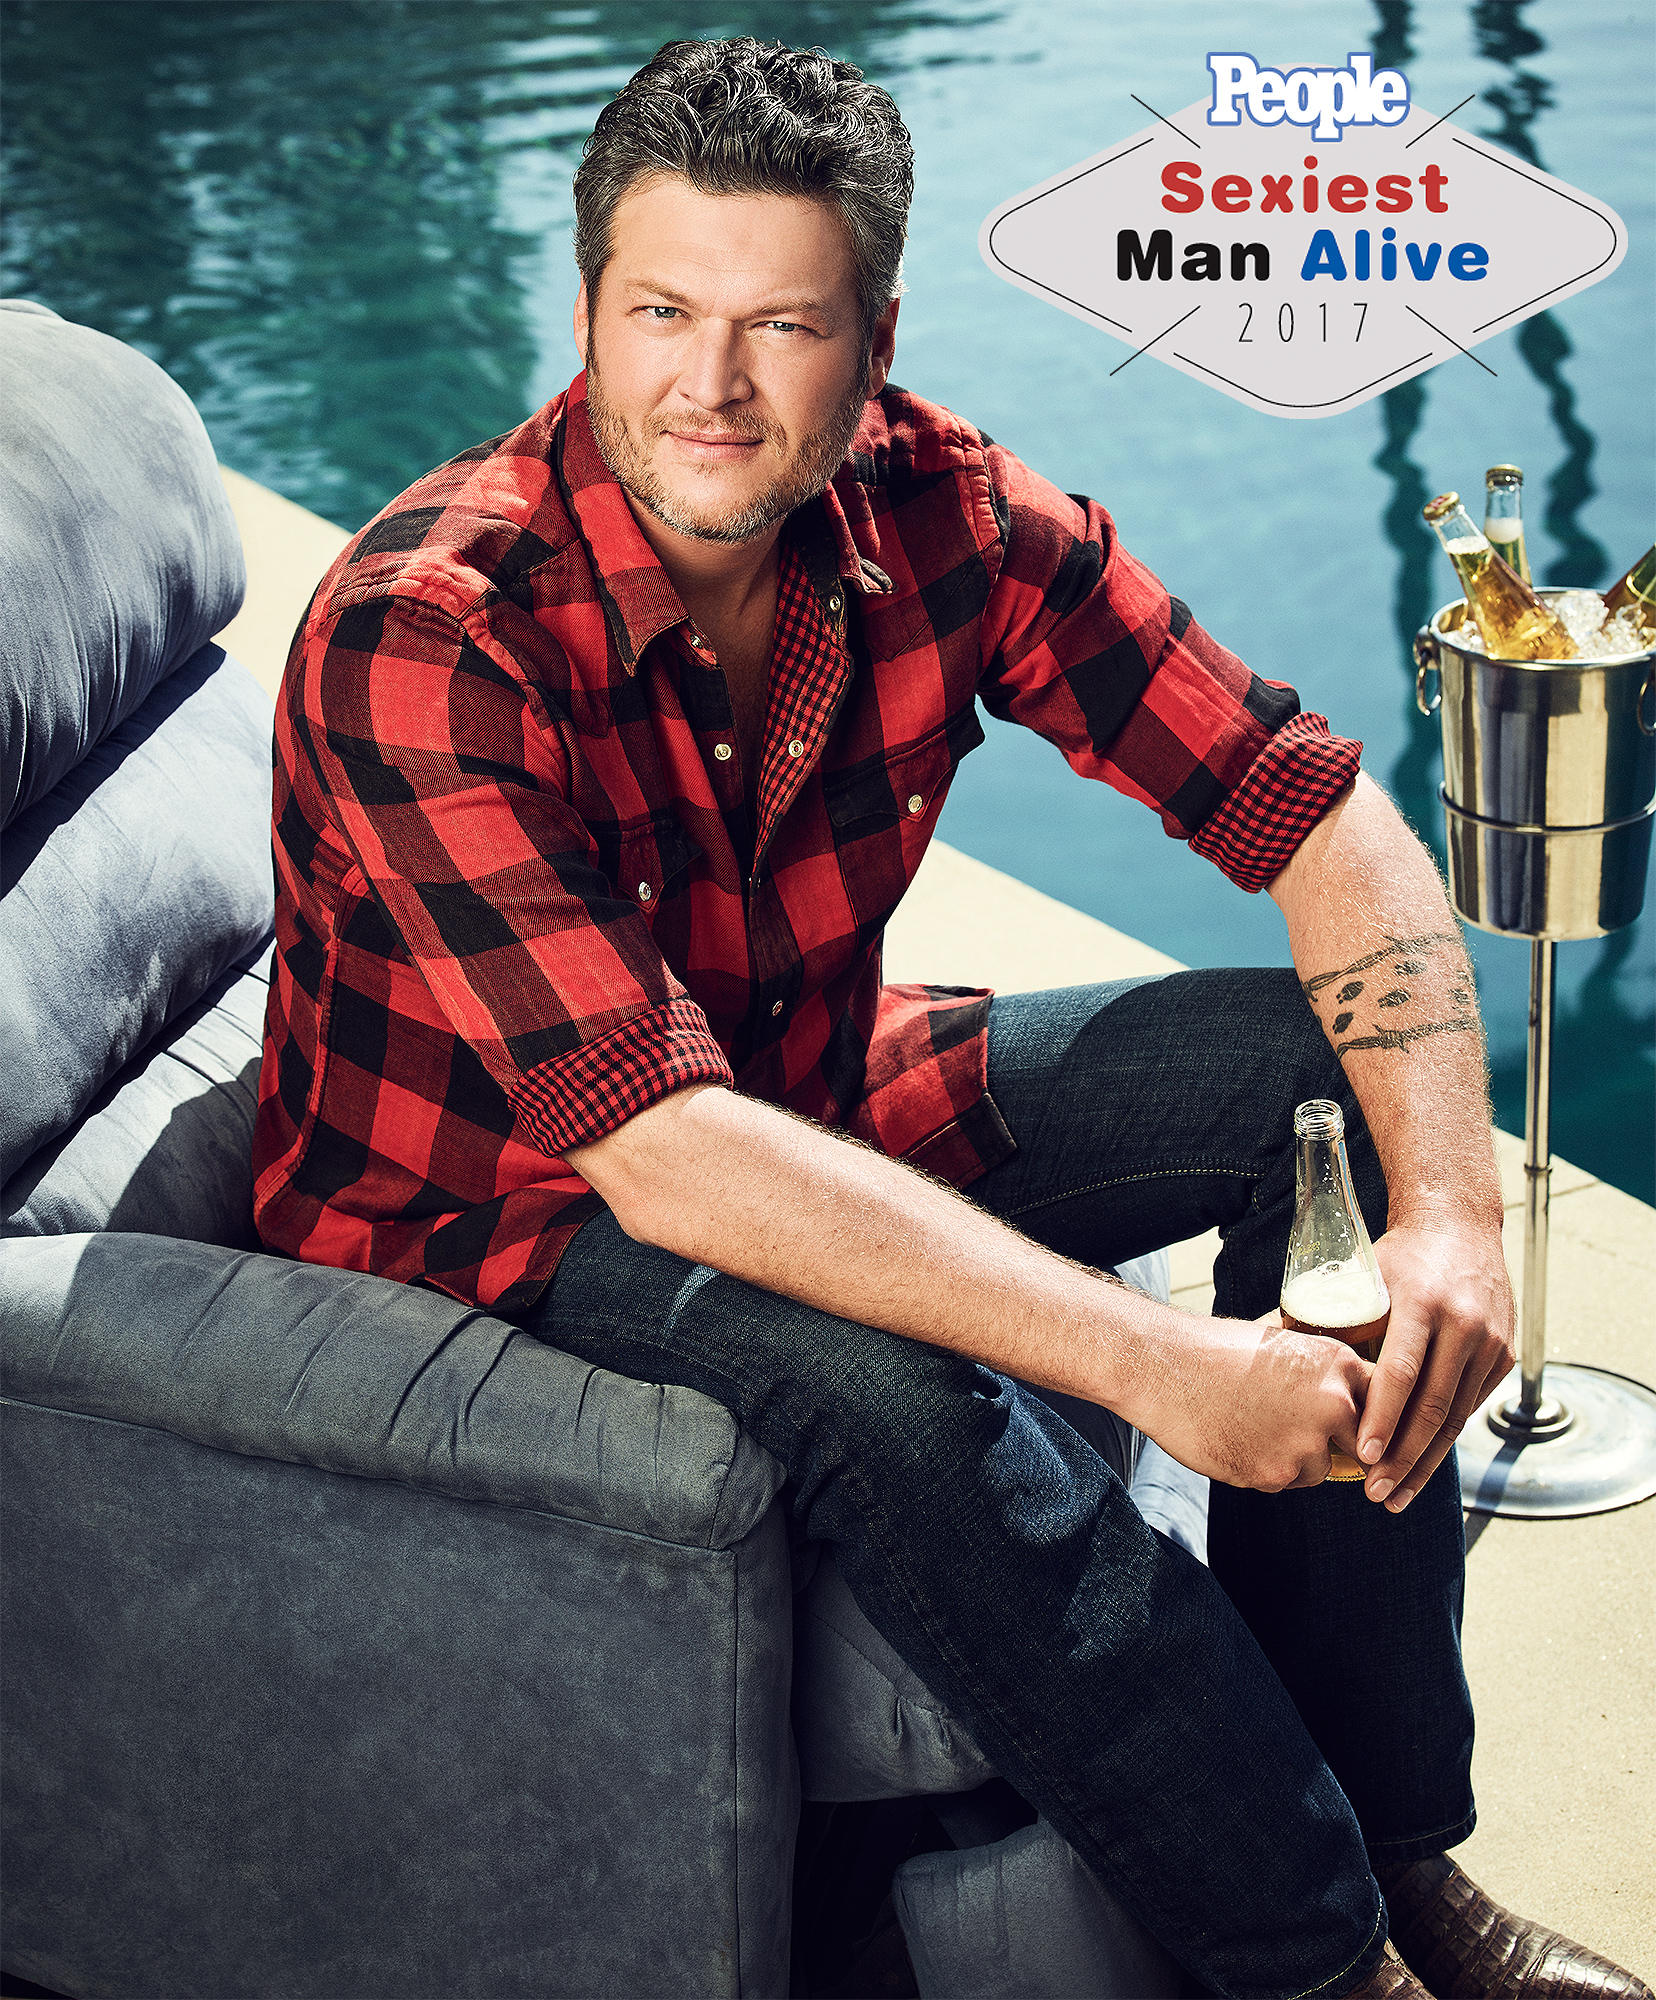 Blake Shelton Sexiest Man AliveCREDIT: Joe Pugliese - @JoePug